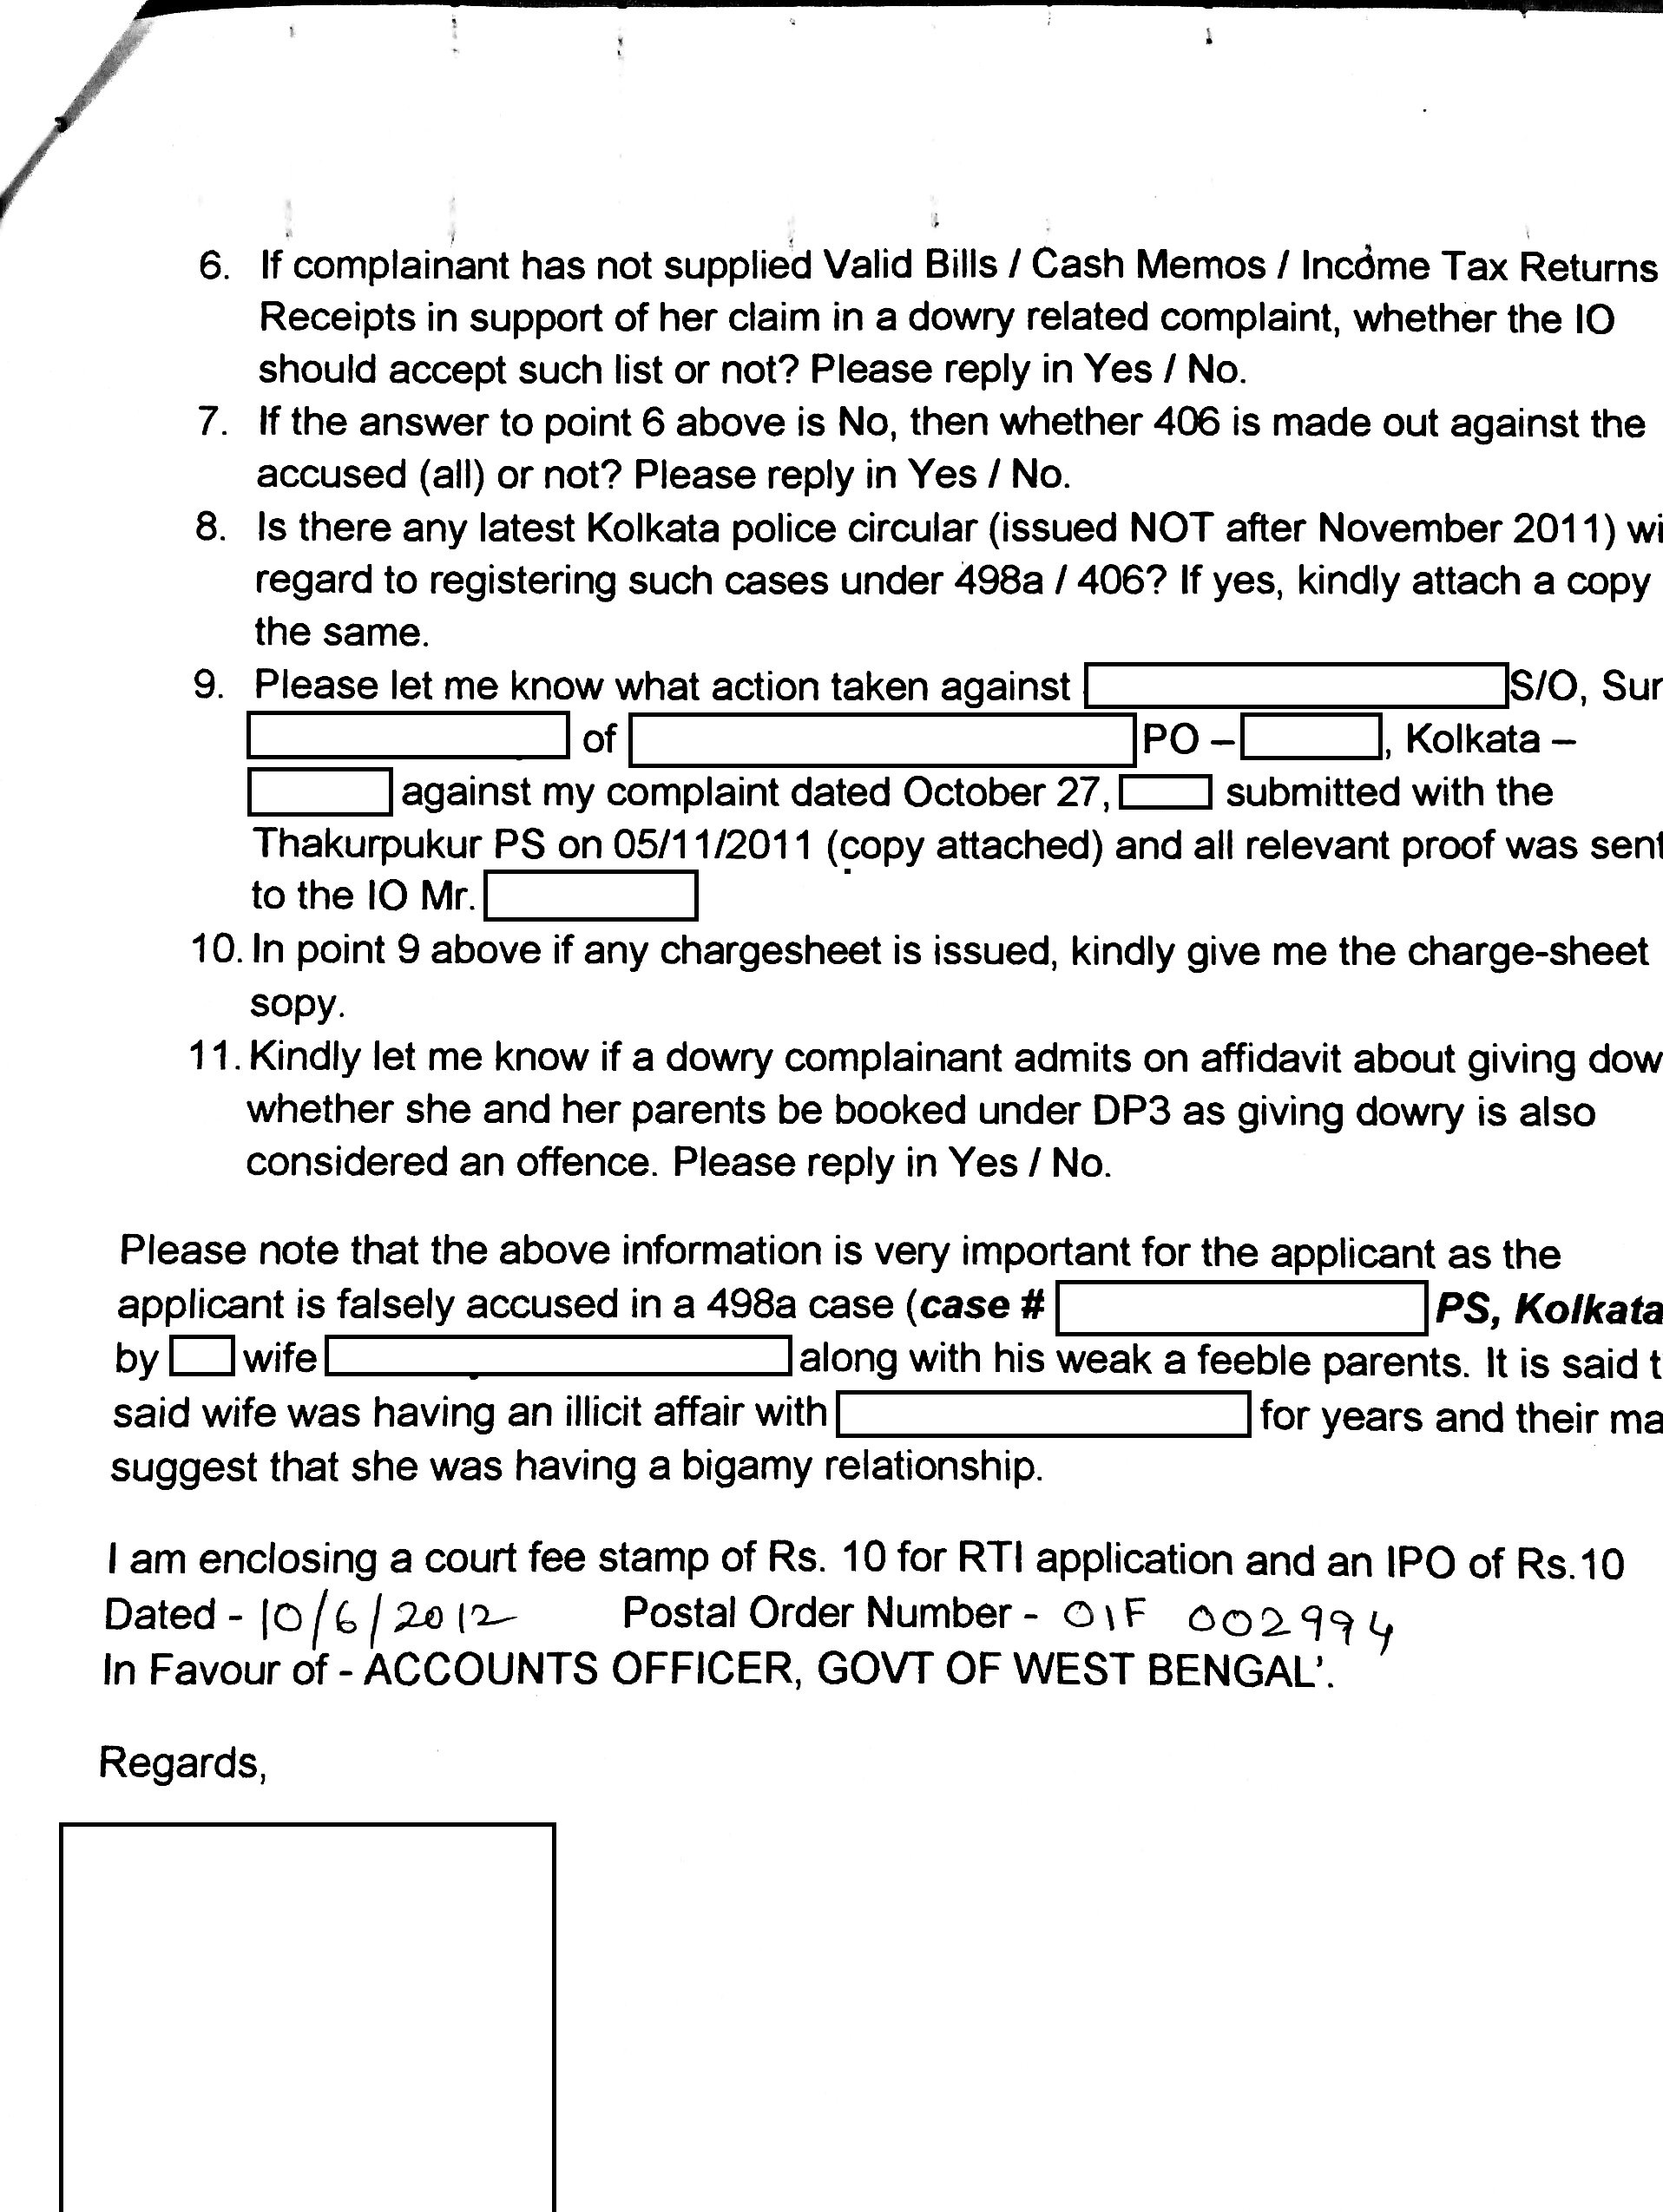 rti_pg2 Application Letter And Cover Difference on writing job, template for job, for commutation, employment job, summer job, management job, for volunteer, law firm, professional job,